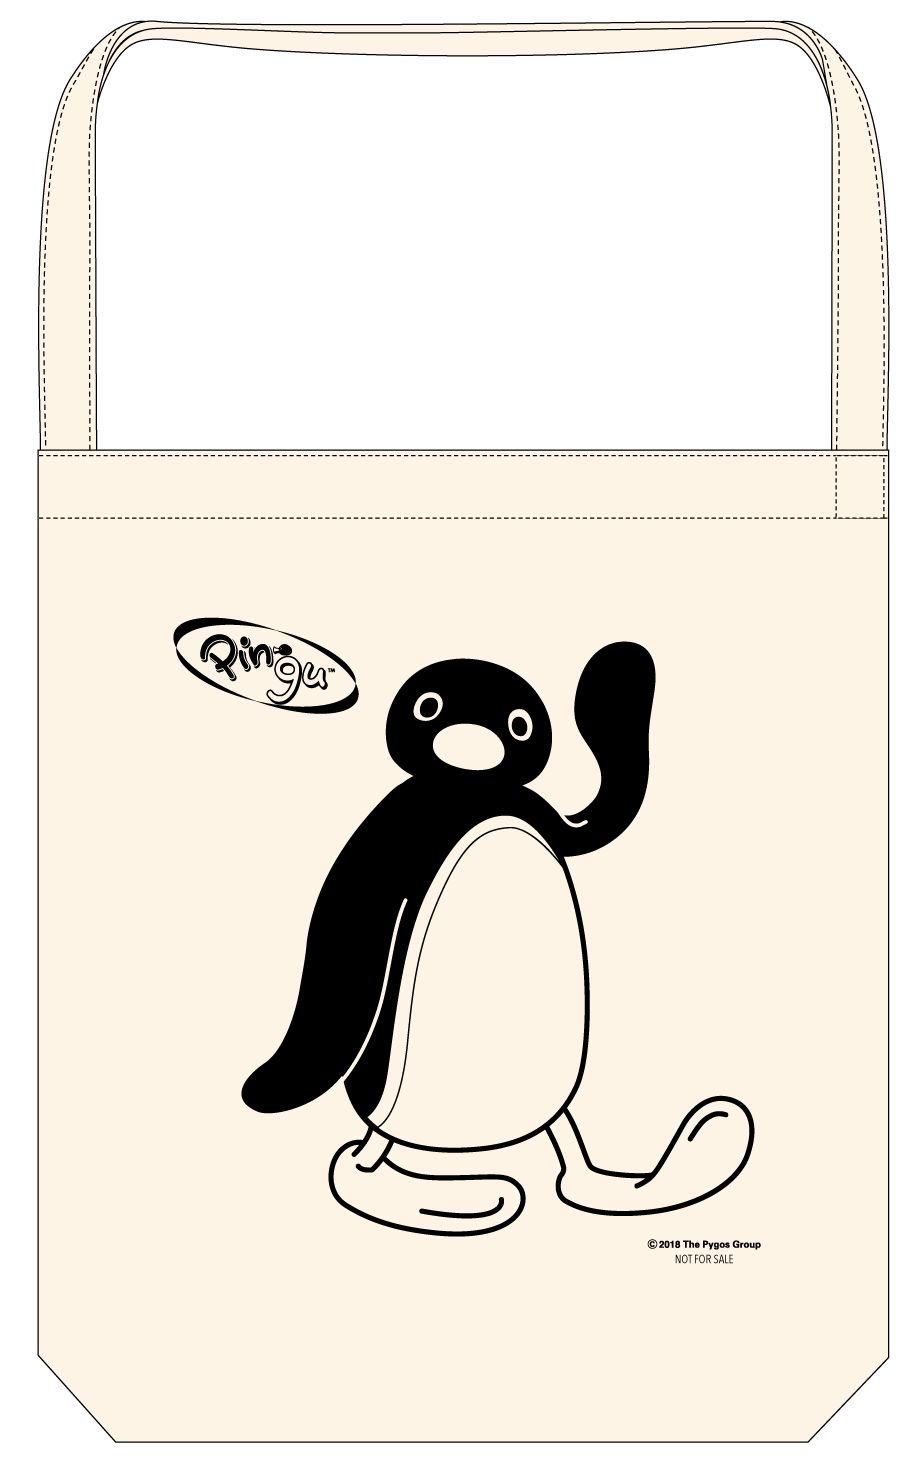 Pingu in the NEW STYLE_限定特典